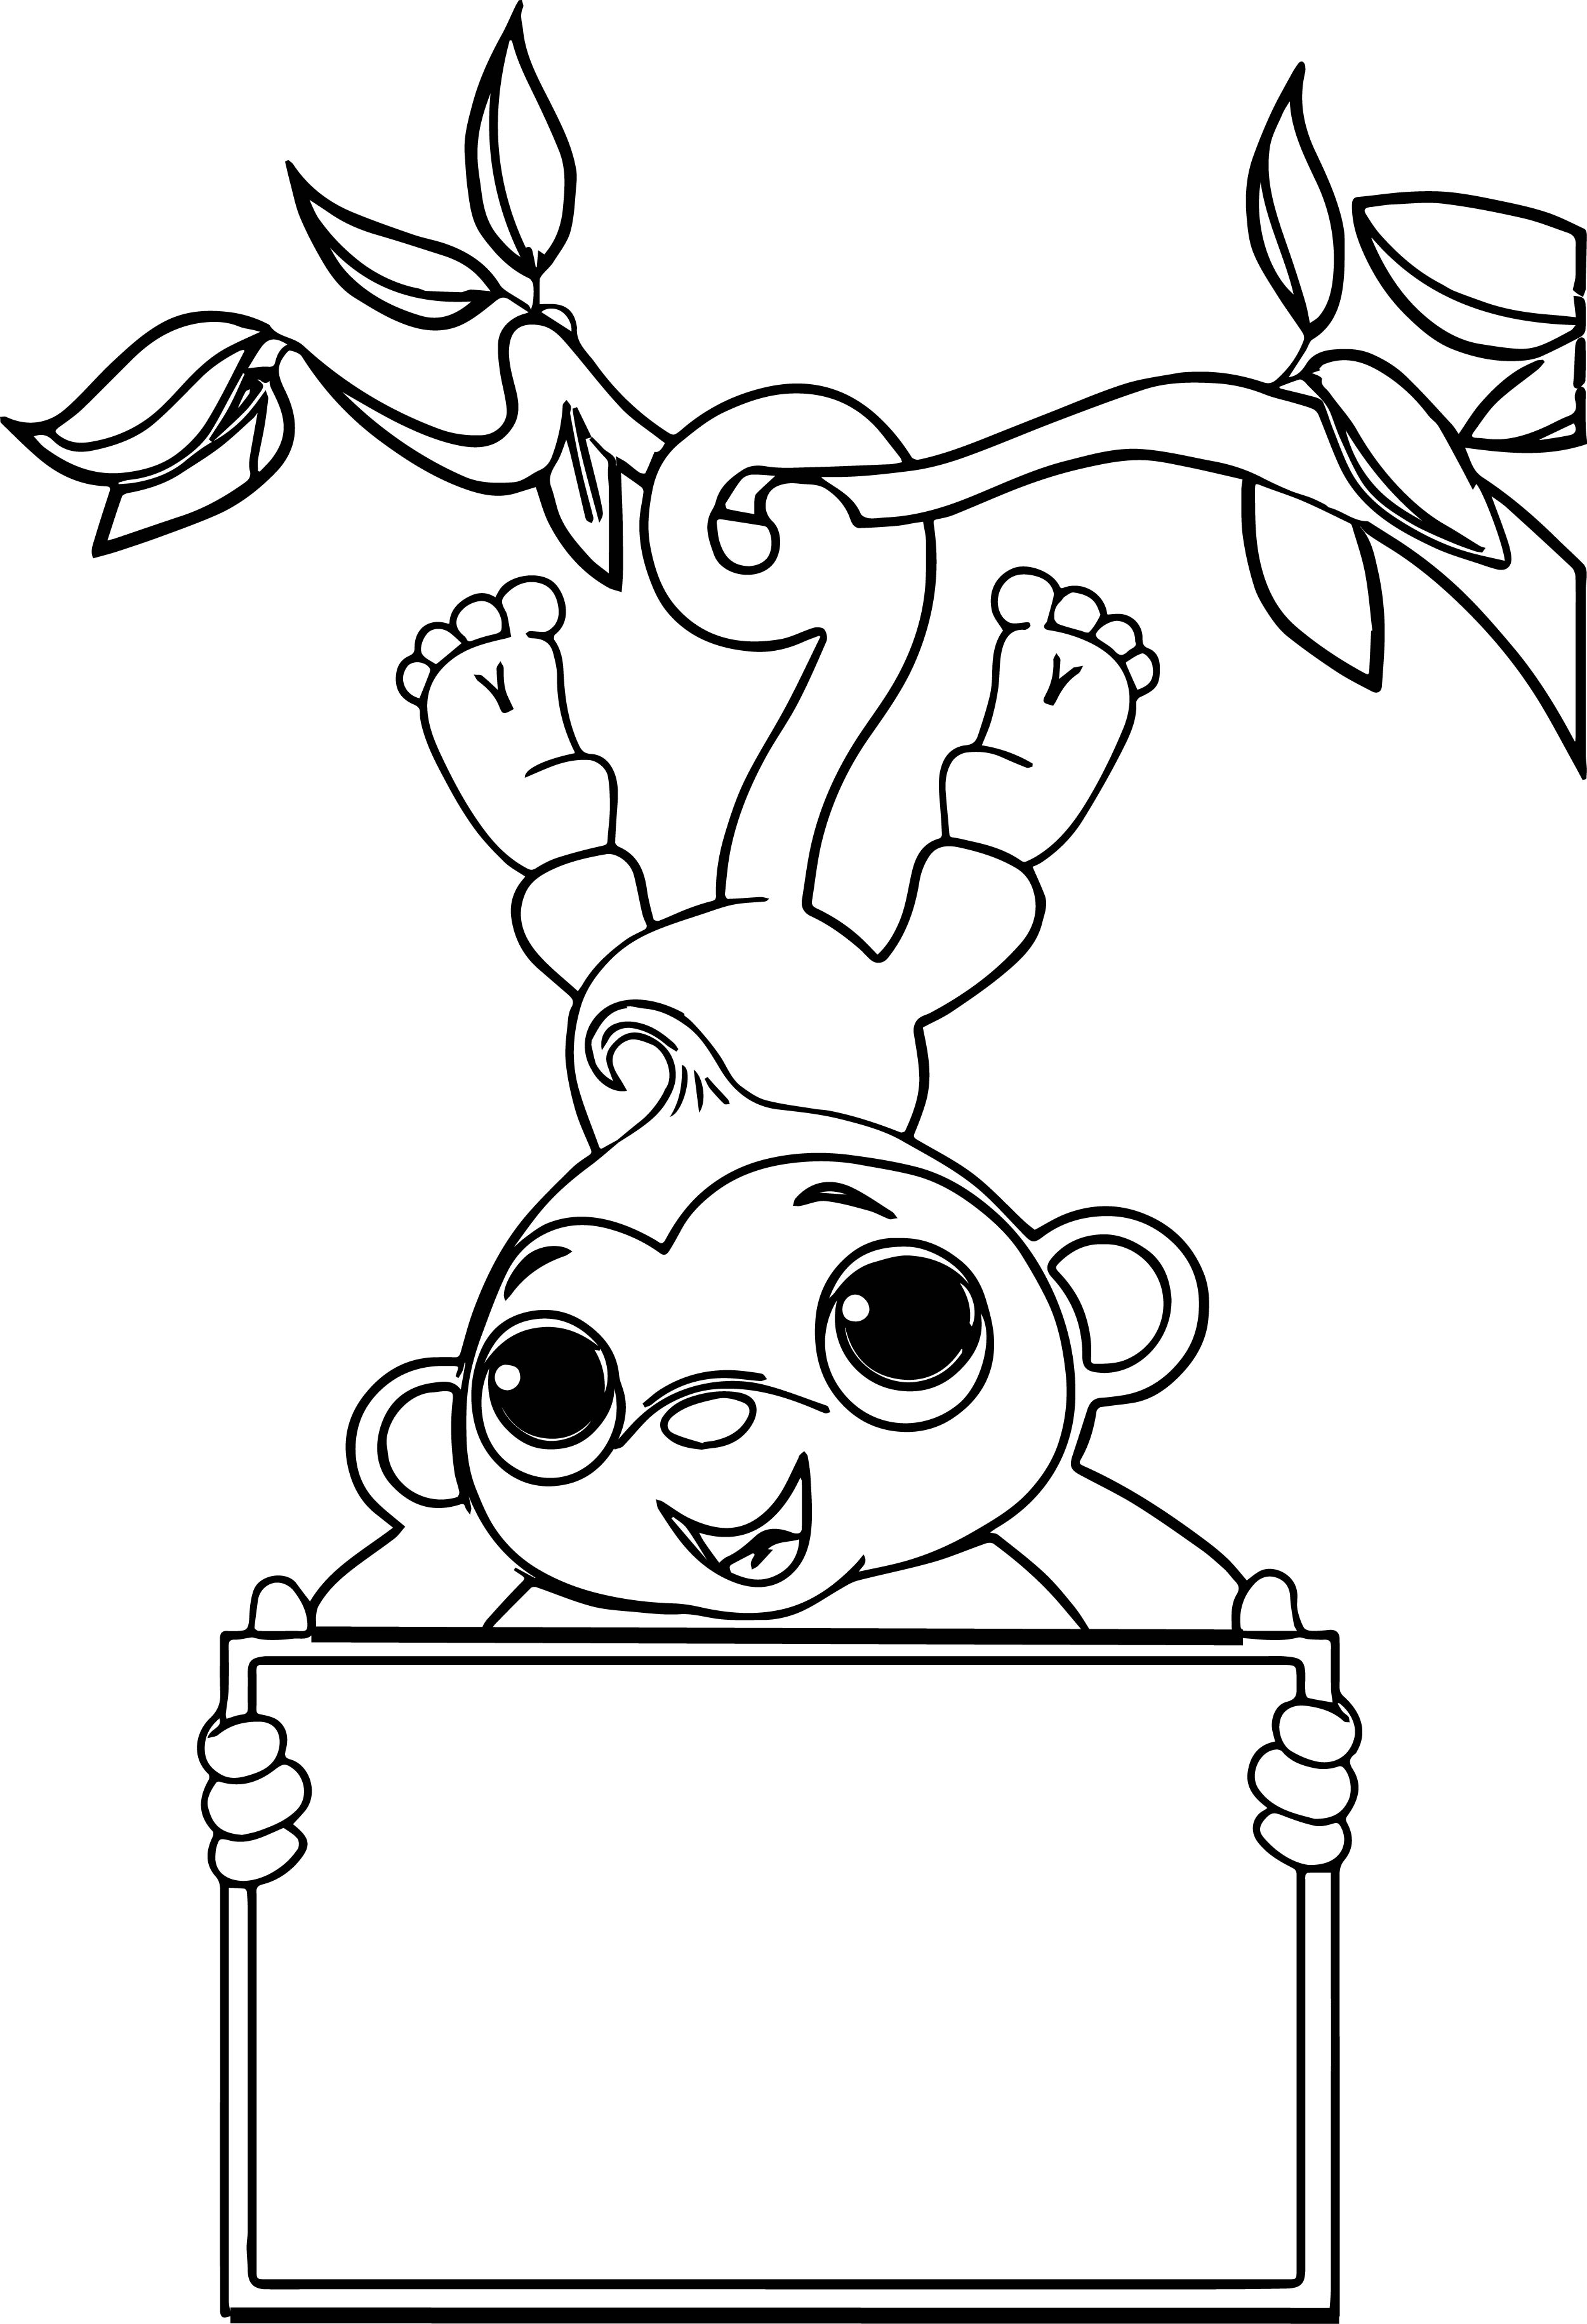 Monkey Coloring Pages Cute Ba Monkey Coloring Pages Free To Print ... | 3660x2500